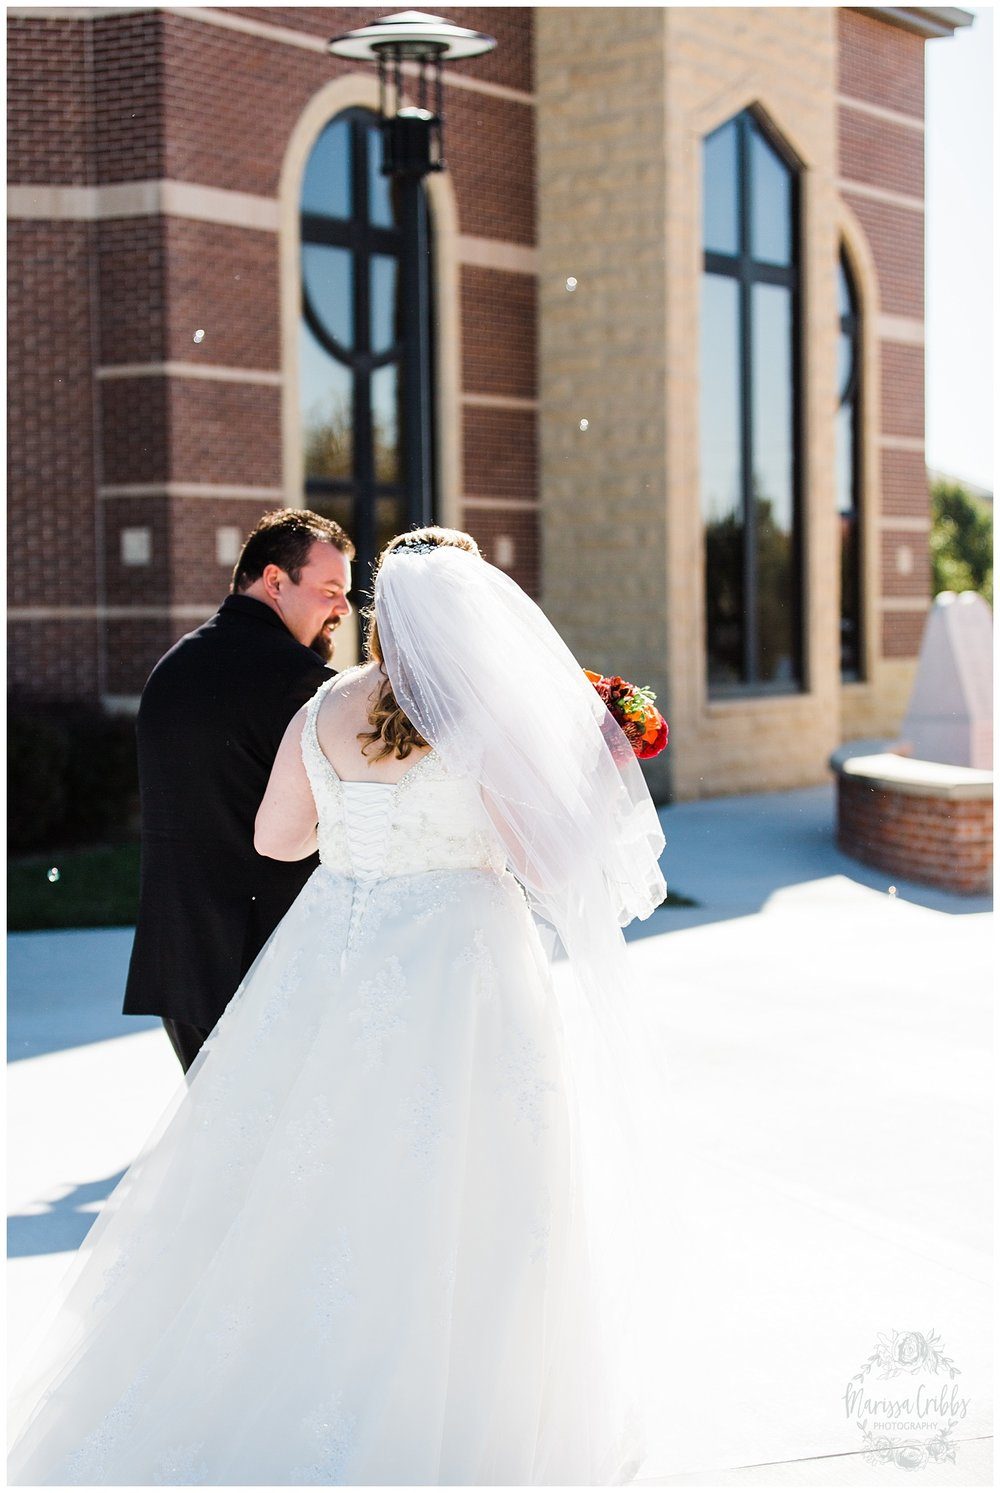 KELLY WEDDING | VENUE AT WILLOW CREEK | MARISSA CRIBBS PHOTOGRAPHY_3717.jpg